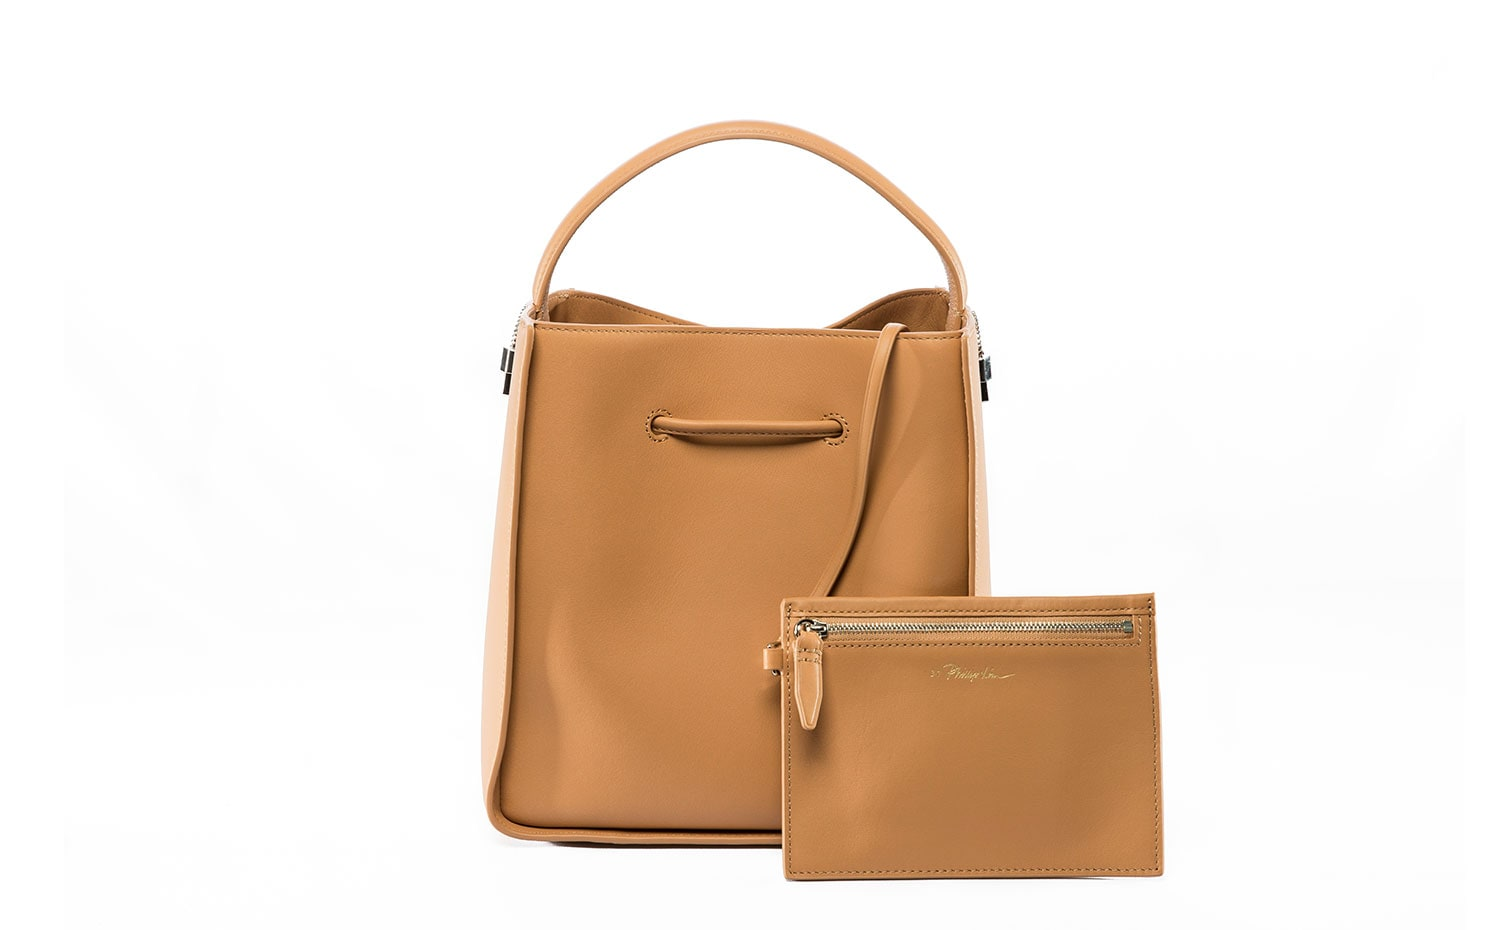 3.1 Phillip Lim: Soleil Small Bucket in Tan